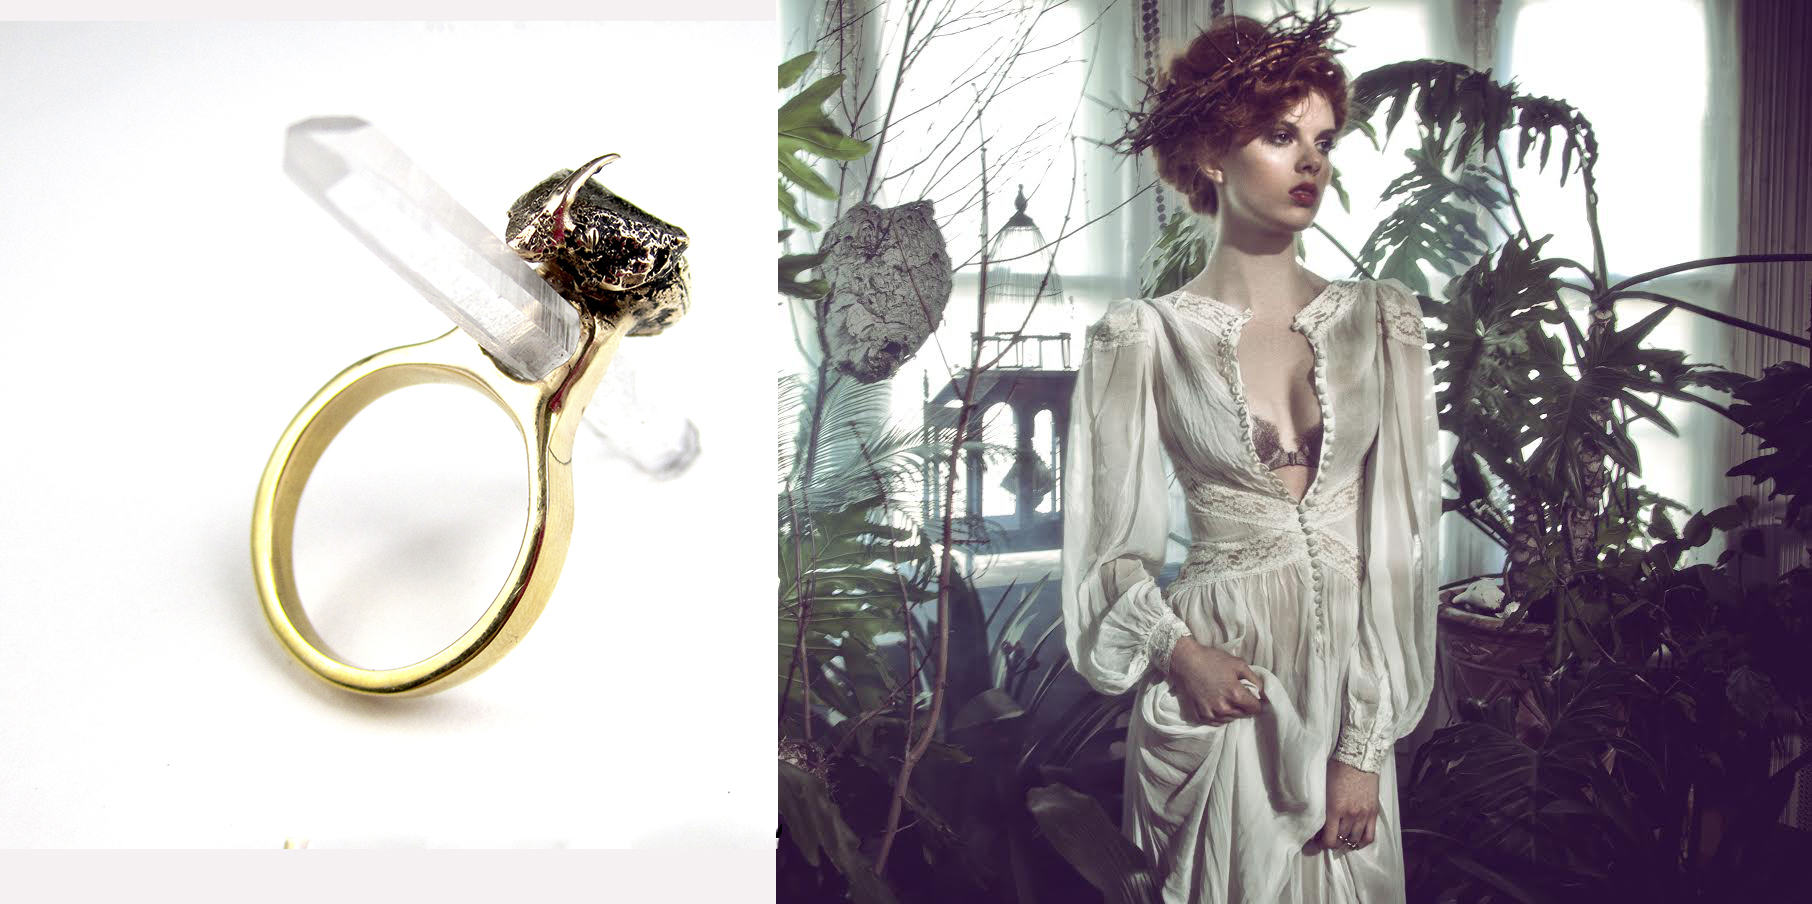 The Resurrection beetle ring featured in a Ghost editorial spread.